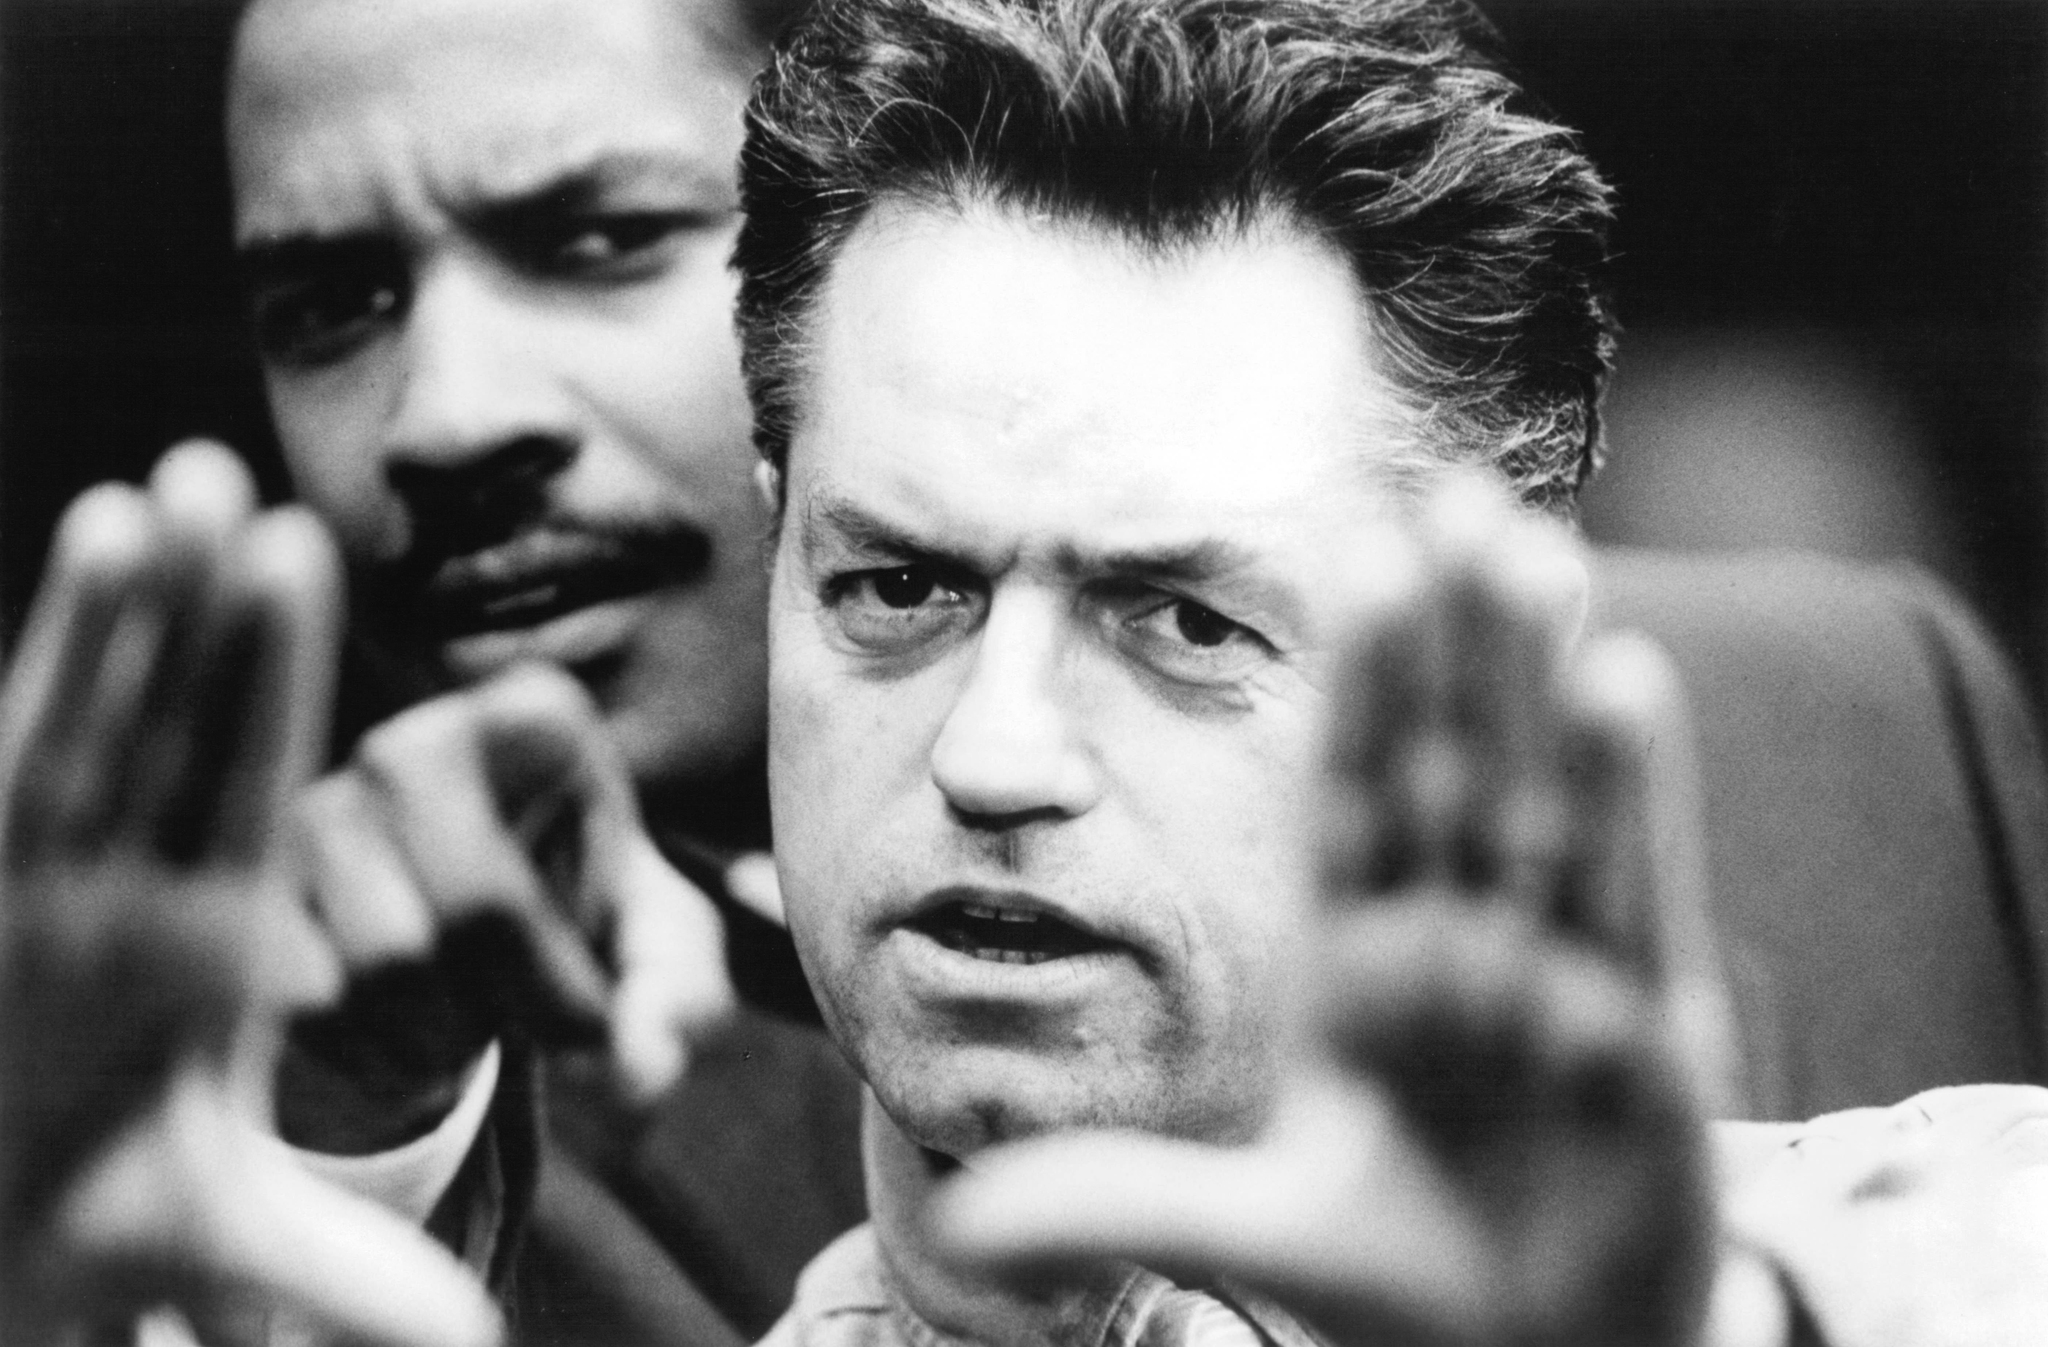 an analysis of philadelphia a movie by jonathan demme Demme's work was wide-ranging, including comedy and thrillers, to bold fare like the 1993 film philadelphia — one of the first mainstream hollywood movies to tackle the aids crisis.